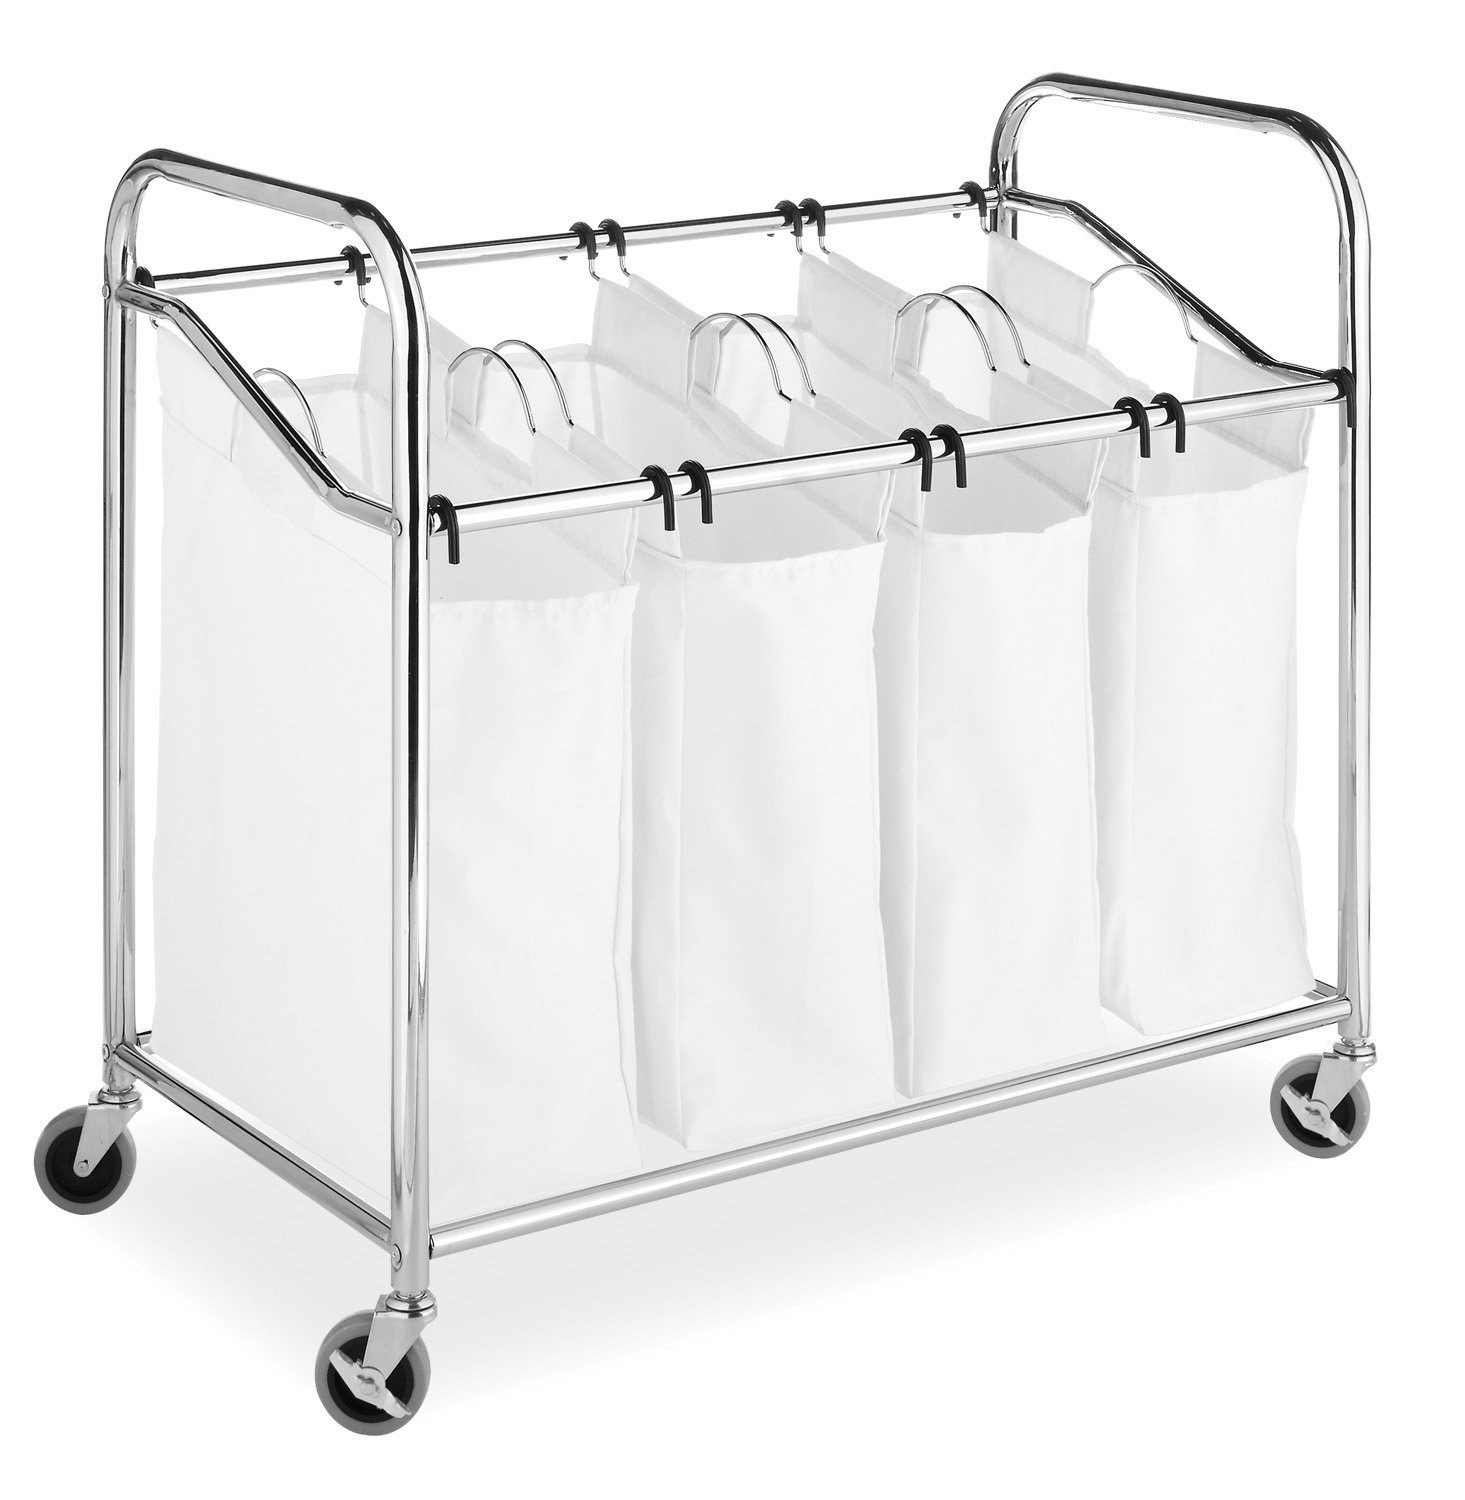 4 Bag Laundry Sorter Wheels Black Laundry Hamper Sorter with Hanging Bar Large Capacity Rolling Laundry Cart Laundry Organizer for Clothes Storage Removable Bags